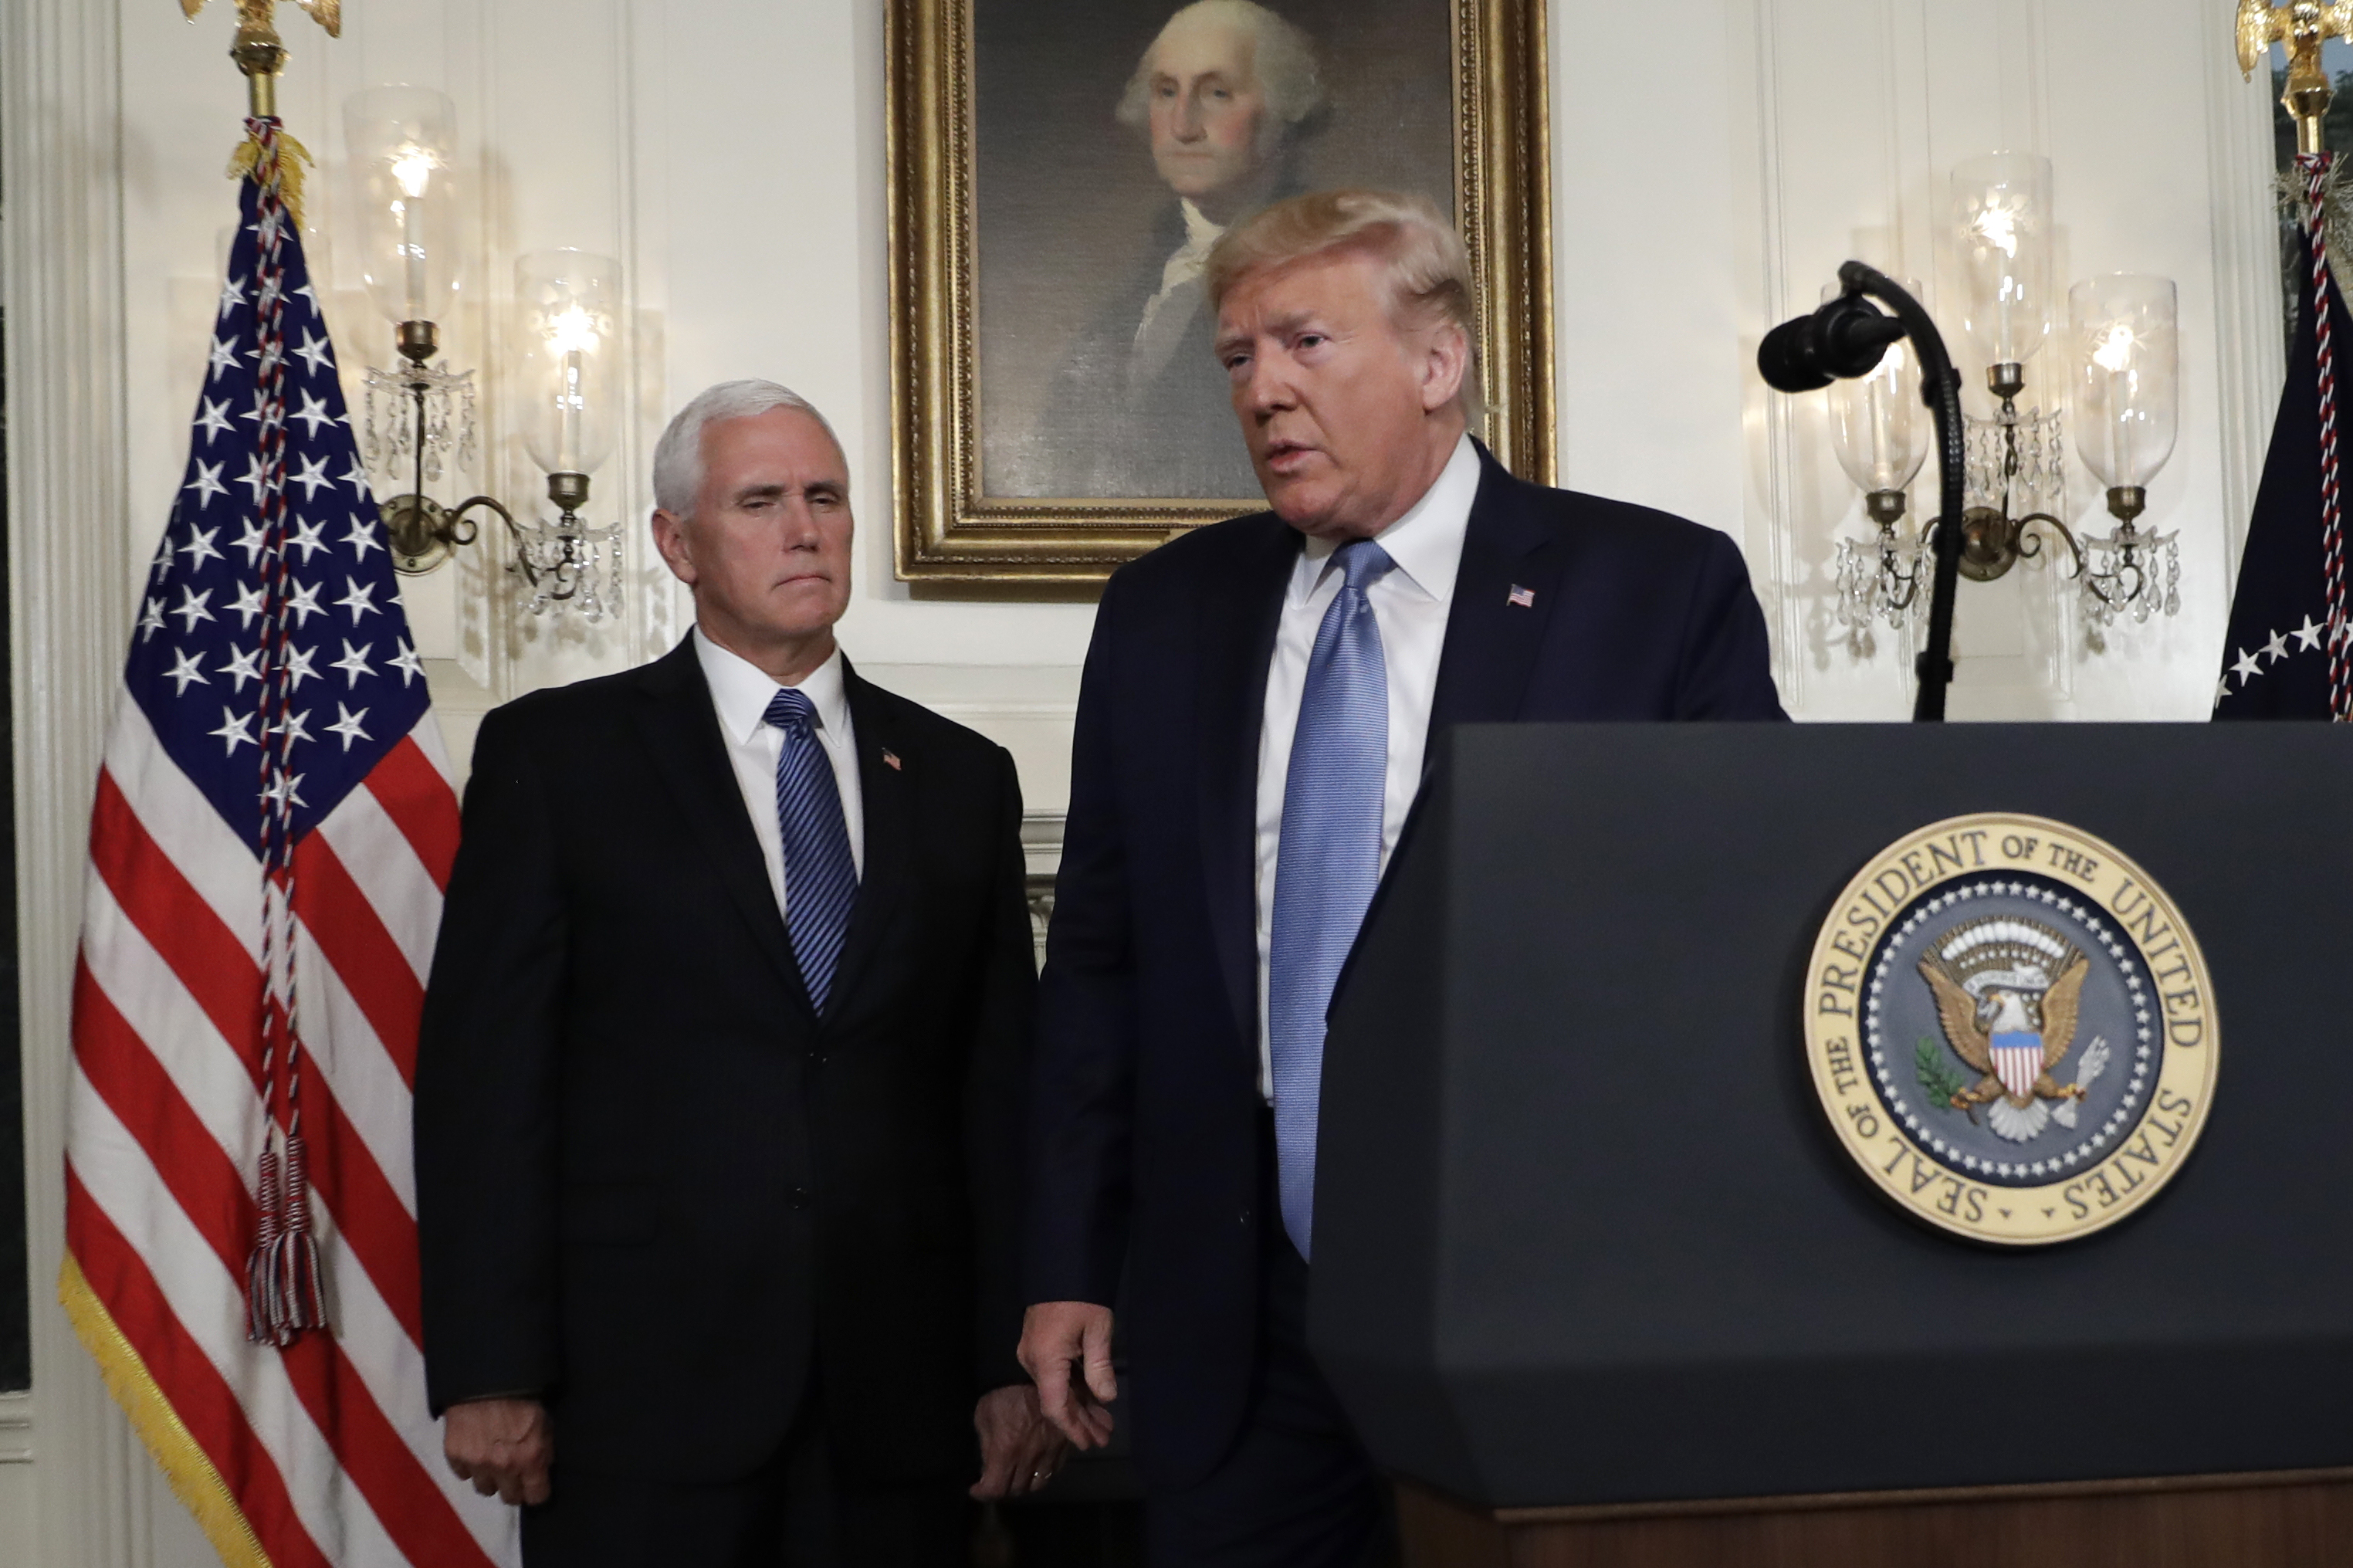 President Trump to keep Mike Pence on ticket in 2020 election